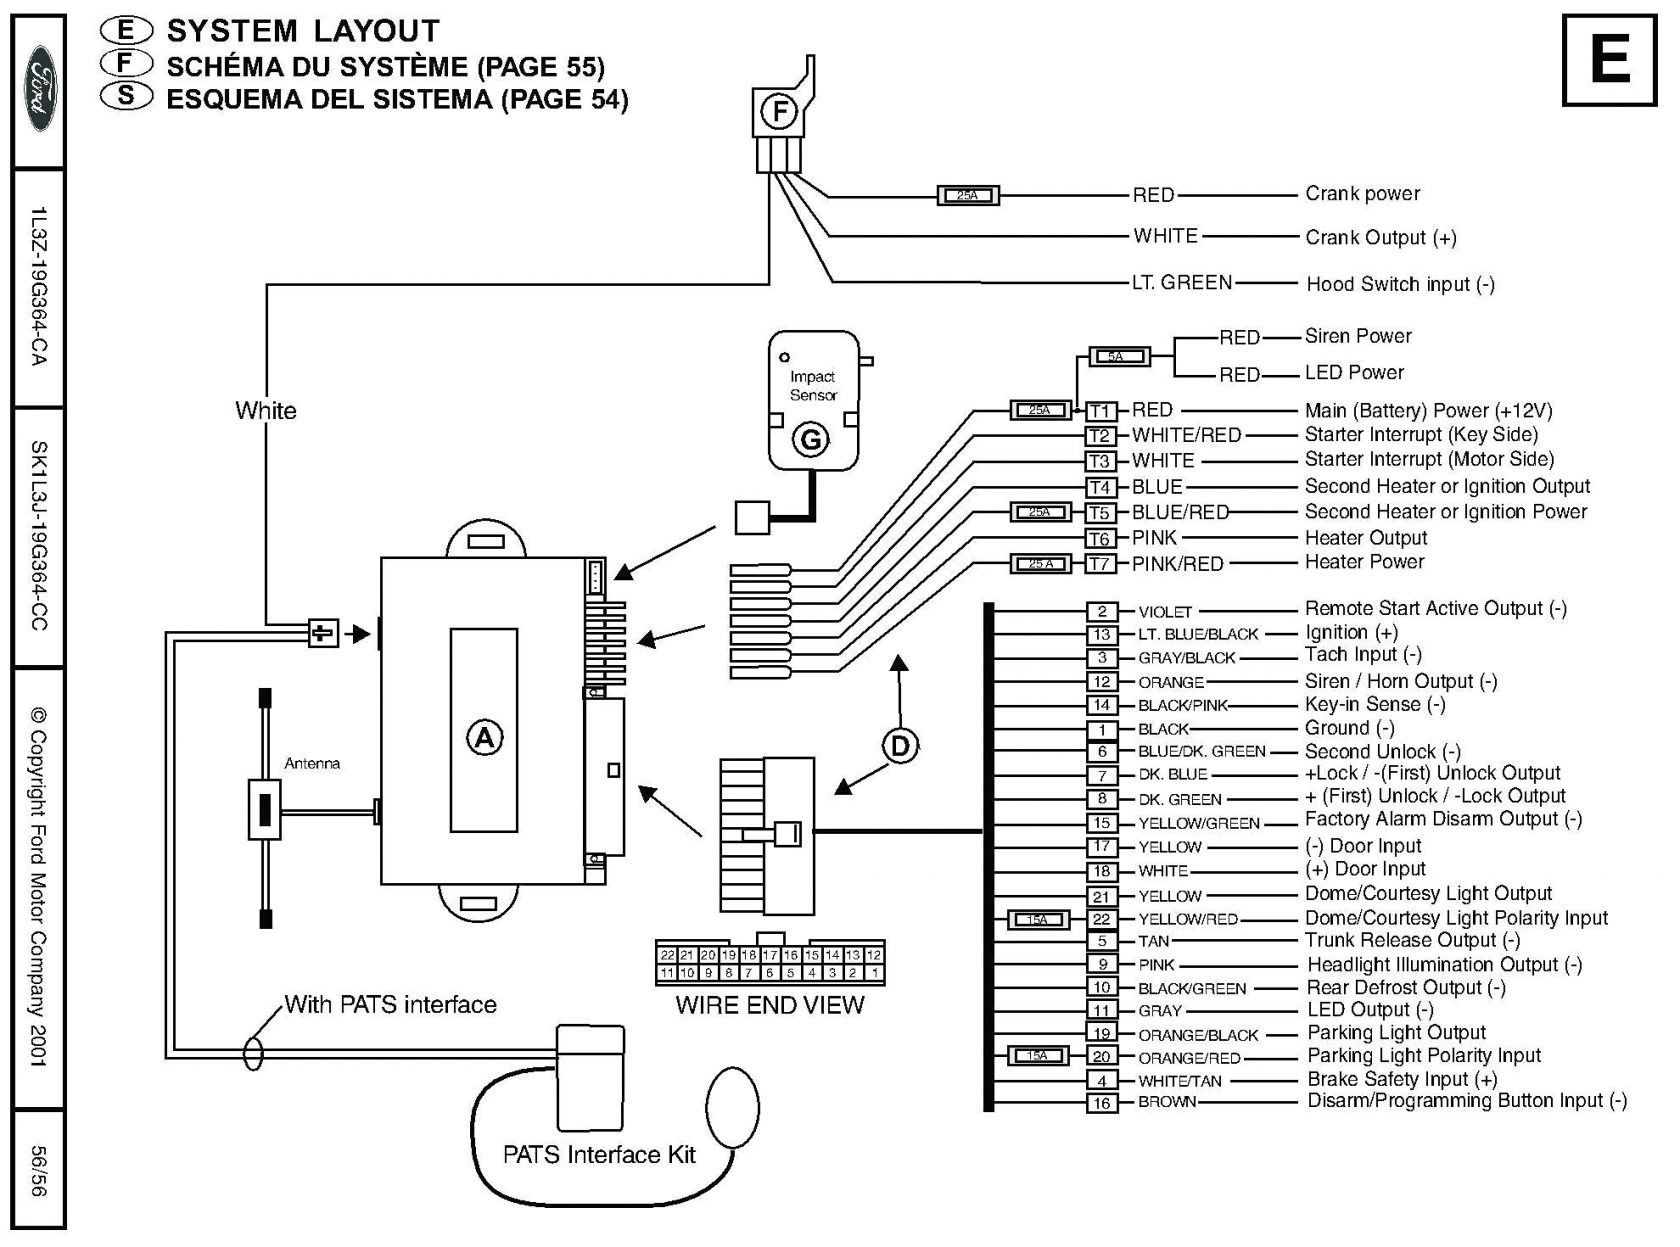 Onan Remote Start Wiring Diagram from i.pinimg.com